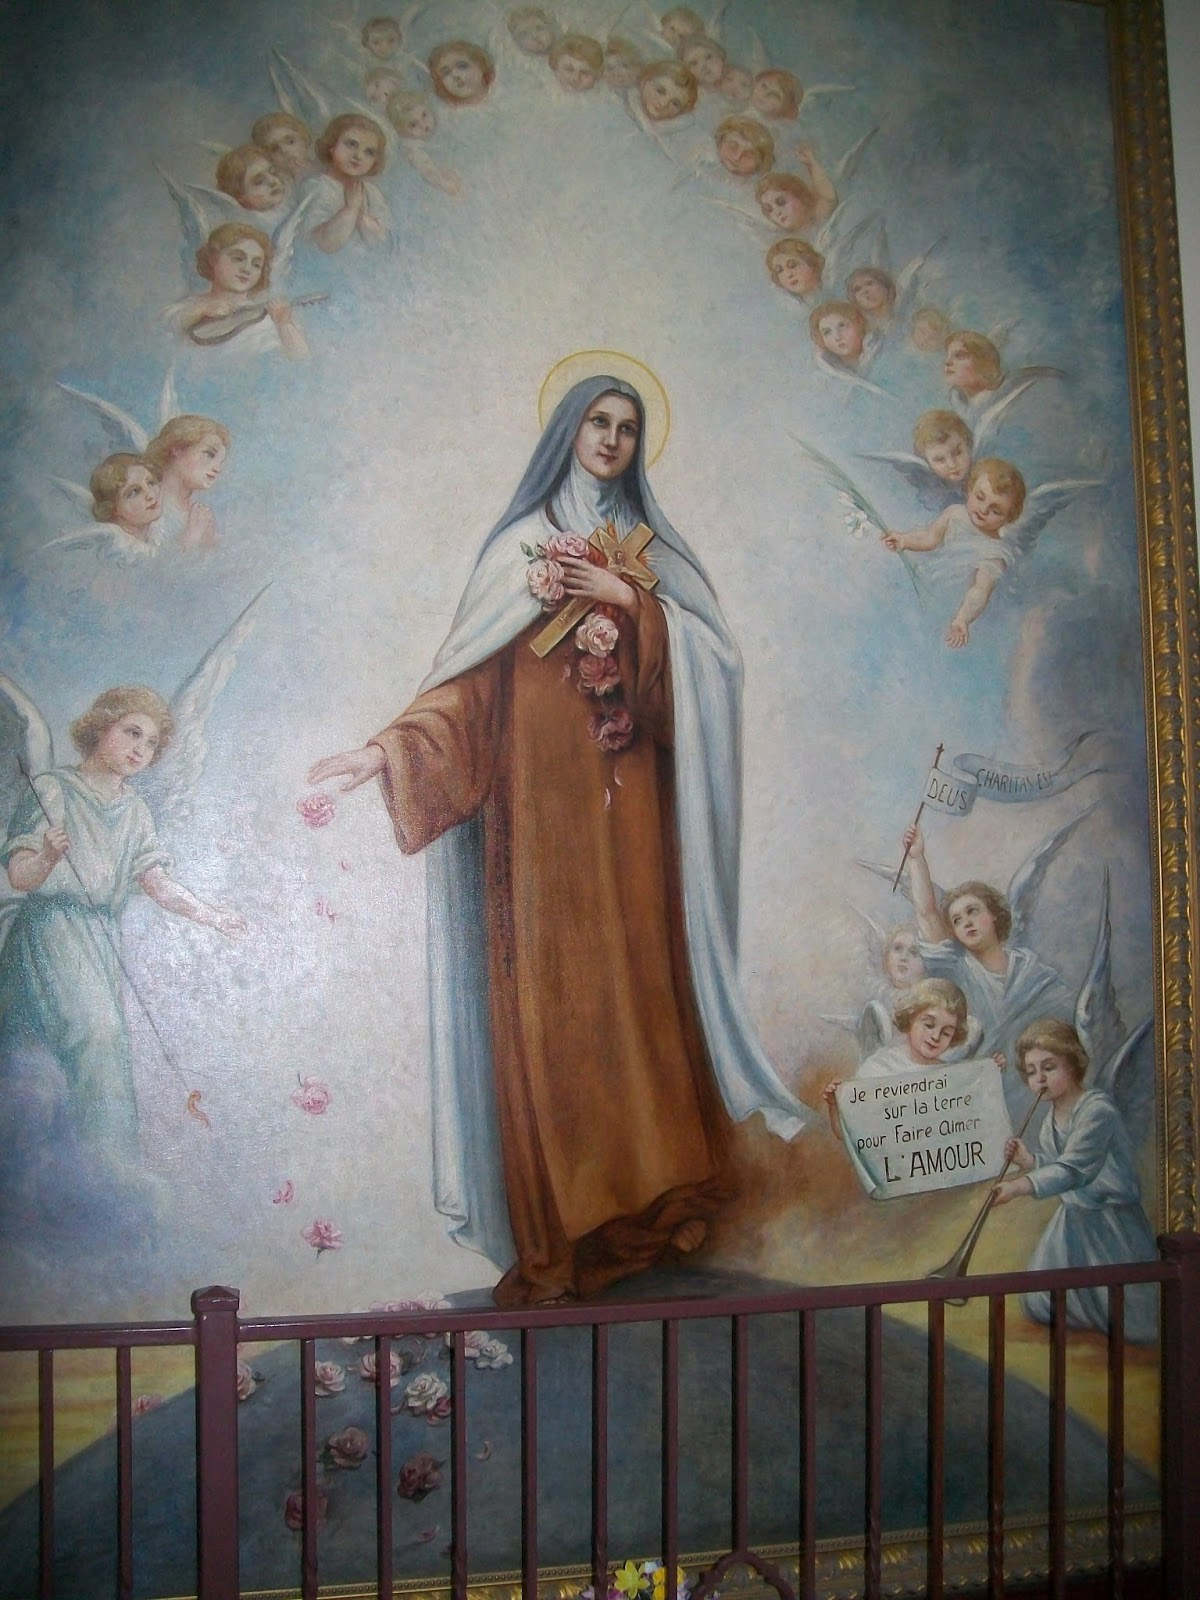 Incidental Roses in the Life of St Thérèse